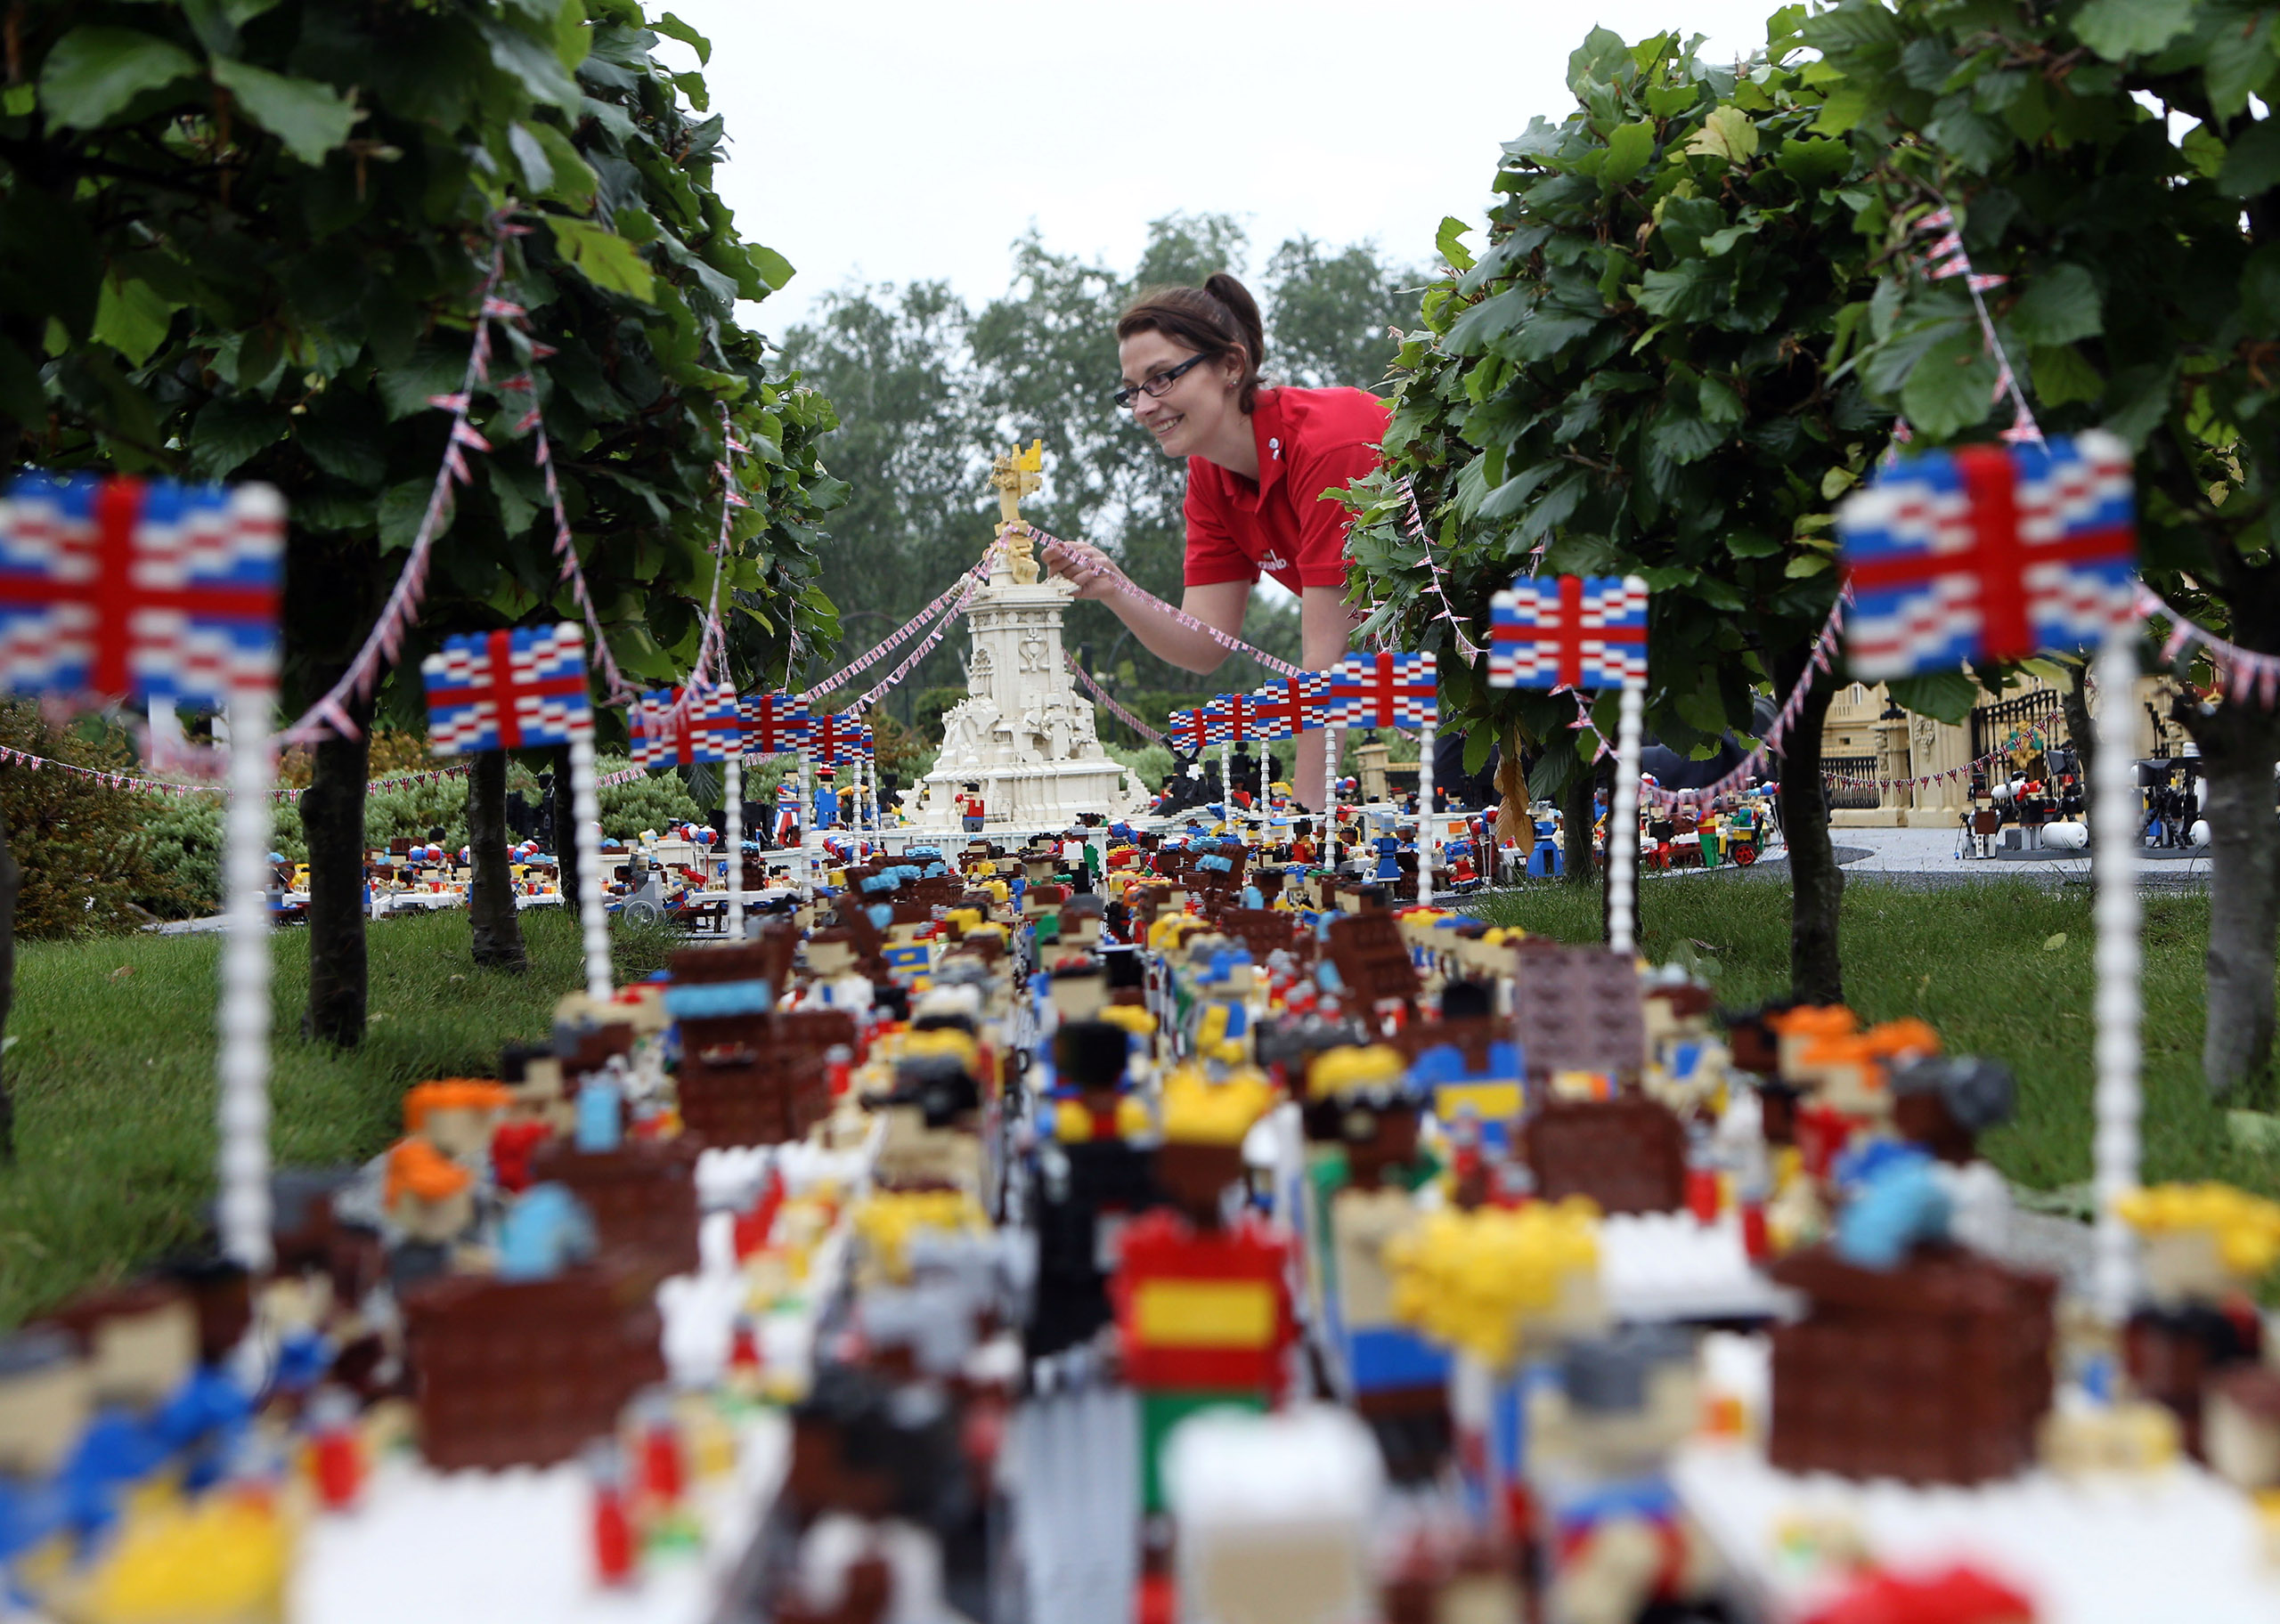 Legoland Windsor Resort model maker Kat James puts the finishing touches to a miniature street party outside a model of Buckingham Palace in Miniland ahead of the Patron's Lunch on The Mall in London to mark the Queen's official 90th birthday, June 8, 2016.